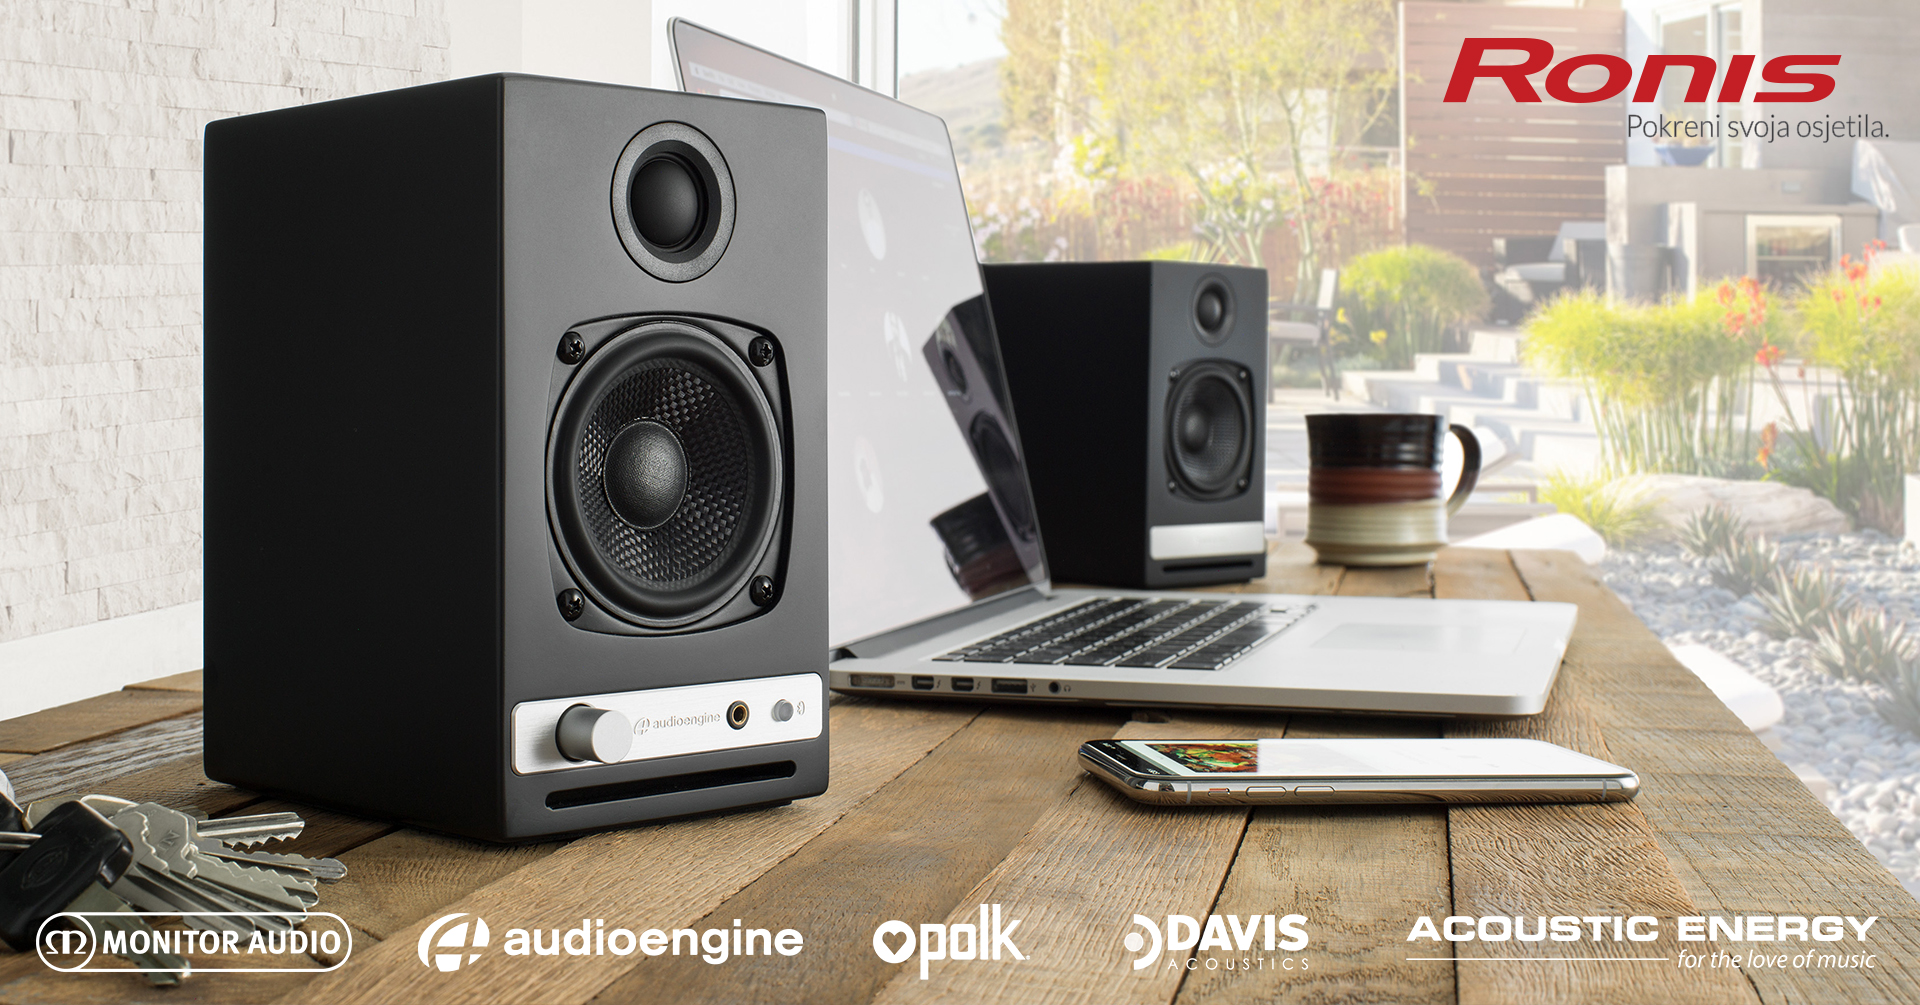 HI-FI SUPER AKCIJA Uhvati do 44% popusta na Audioengine, Davis Acoustics, Polk, Acoustic Energy i Mo